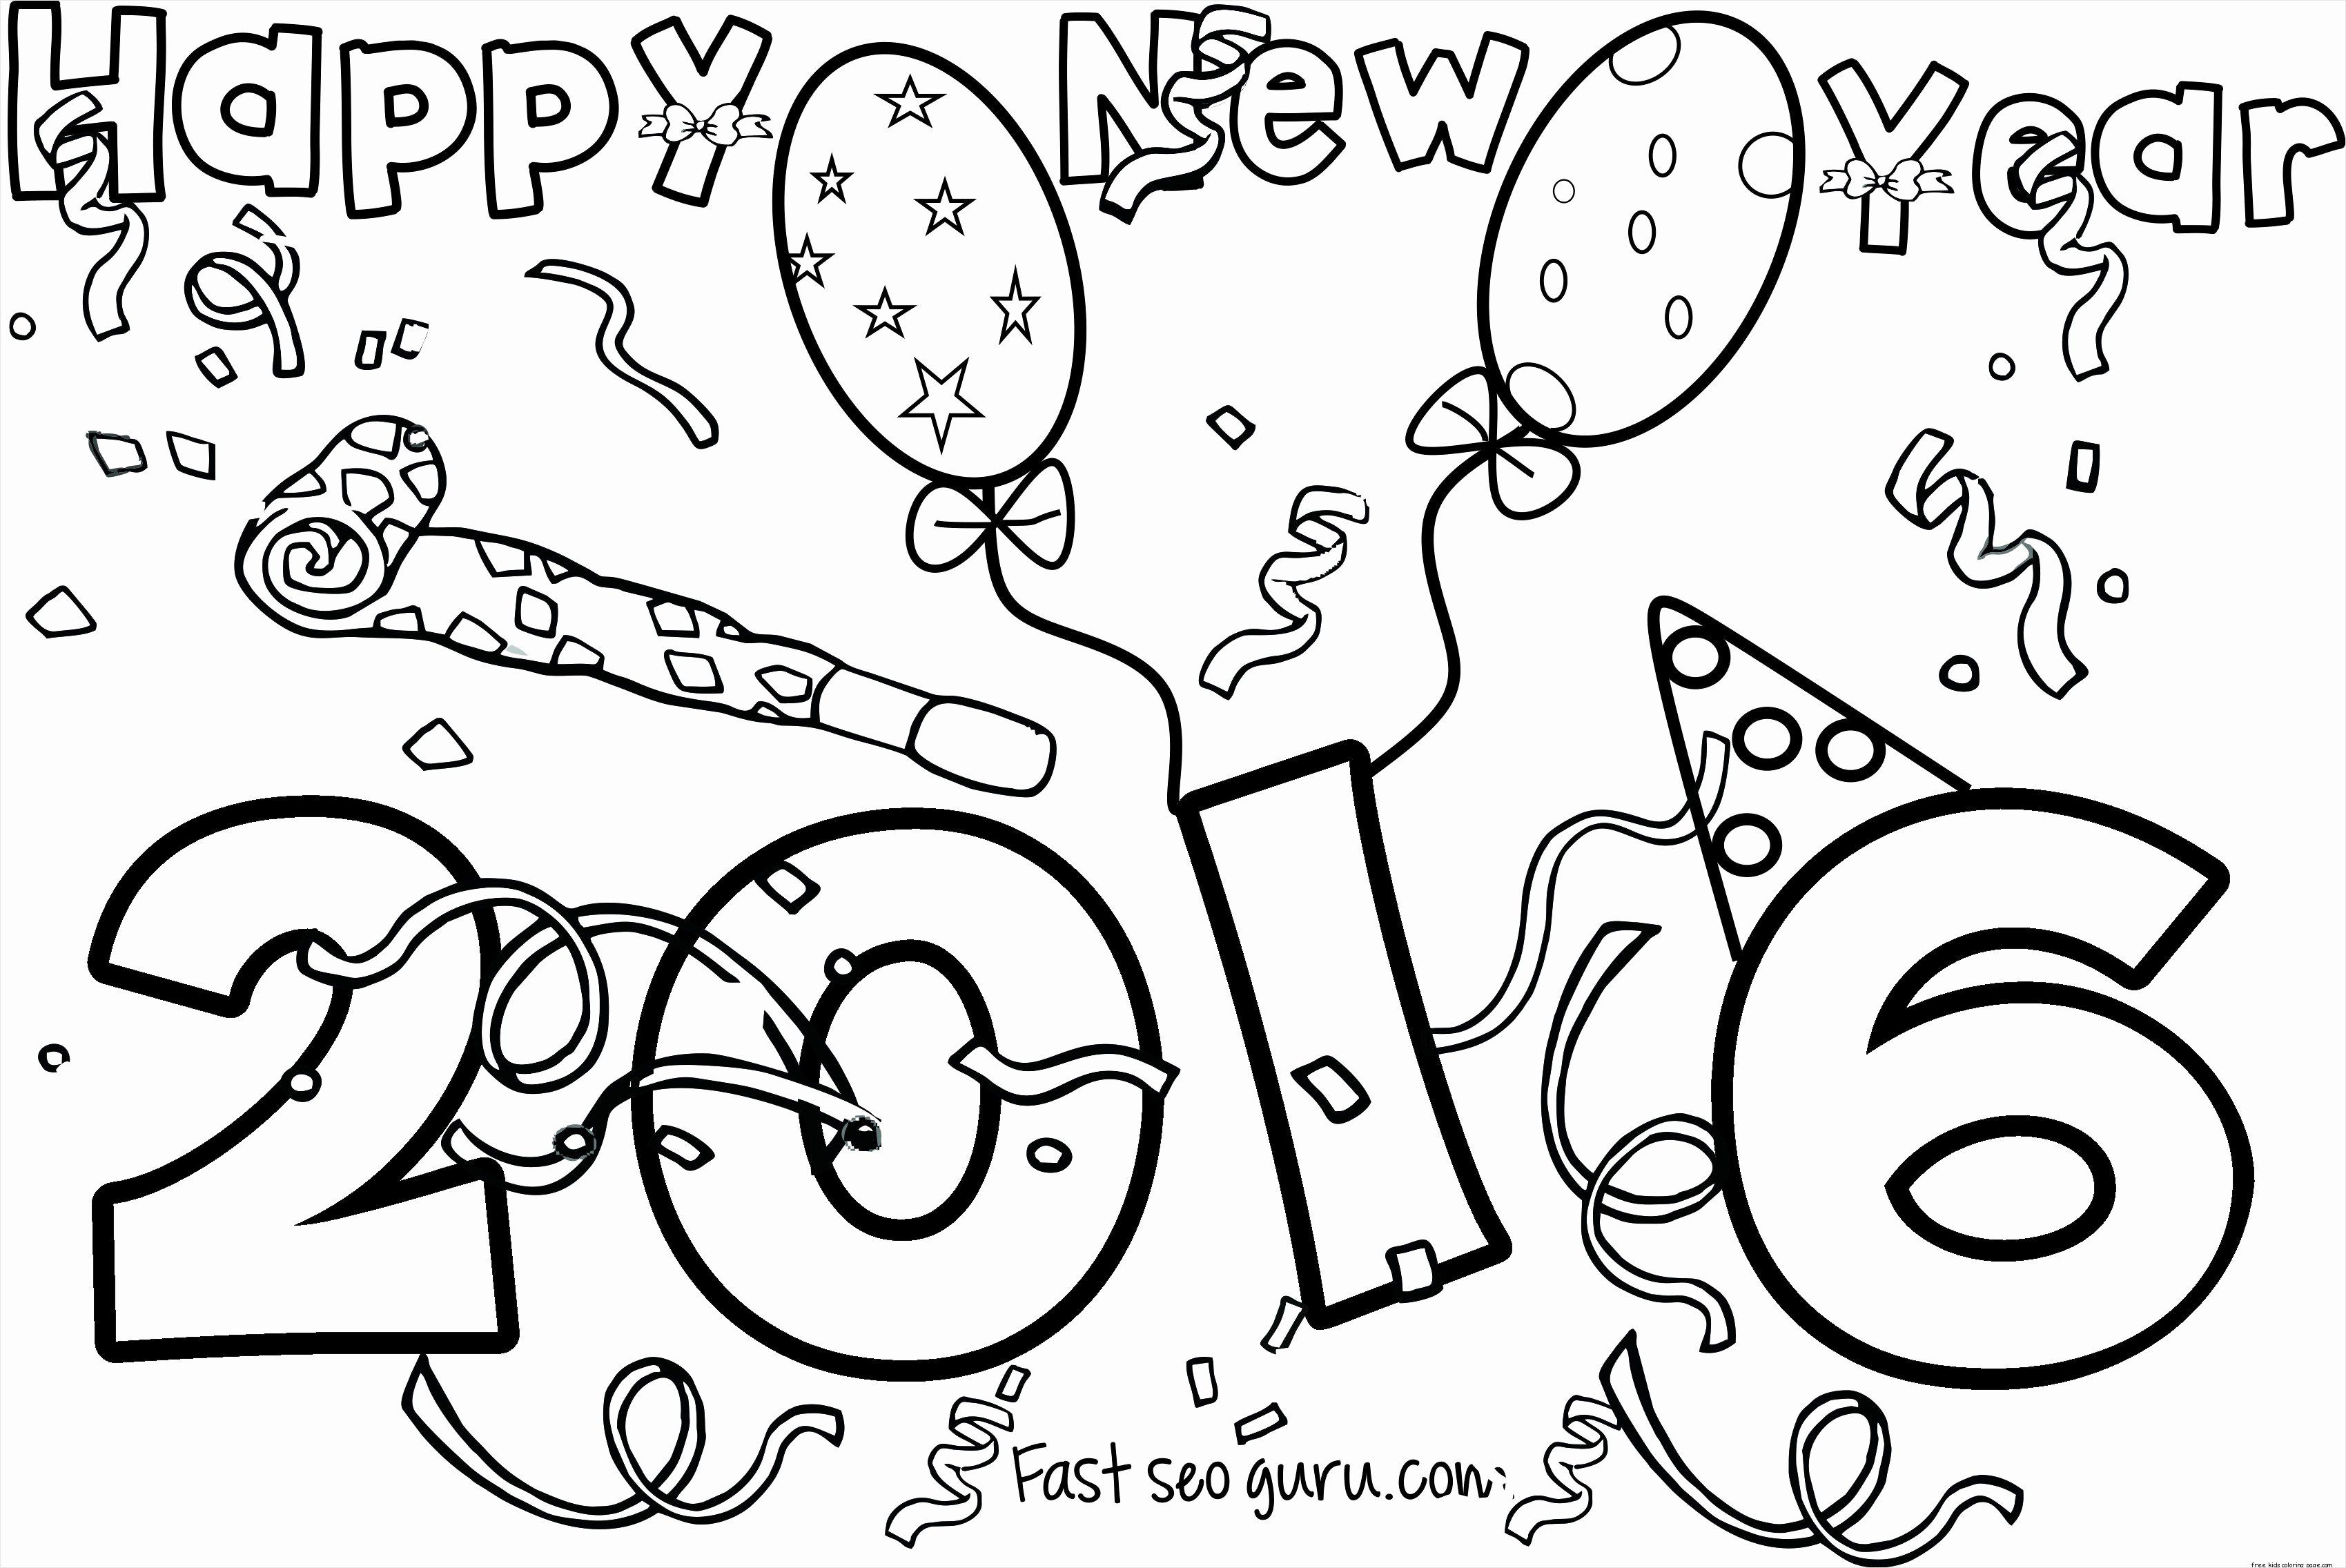 Anchor Adult Coloring Pages Awesome Fresh Happy Chinese